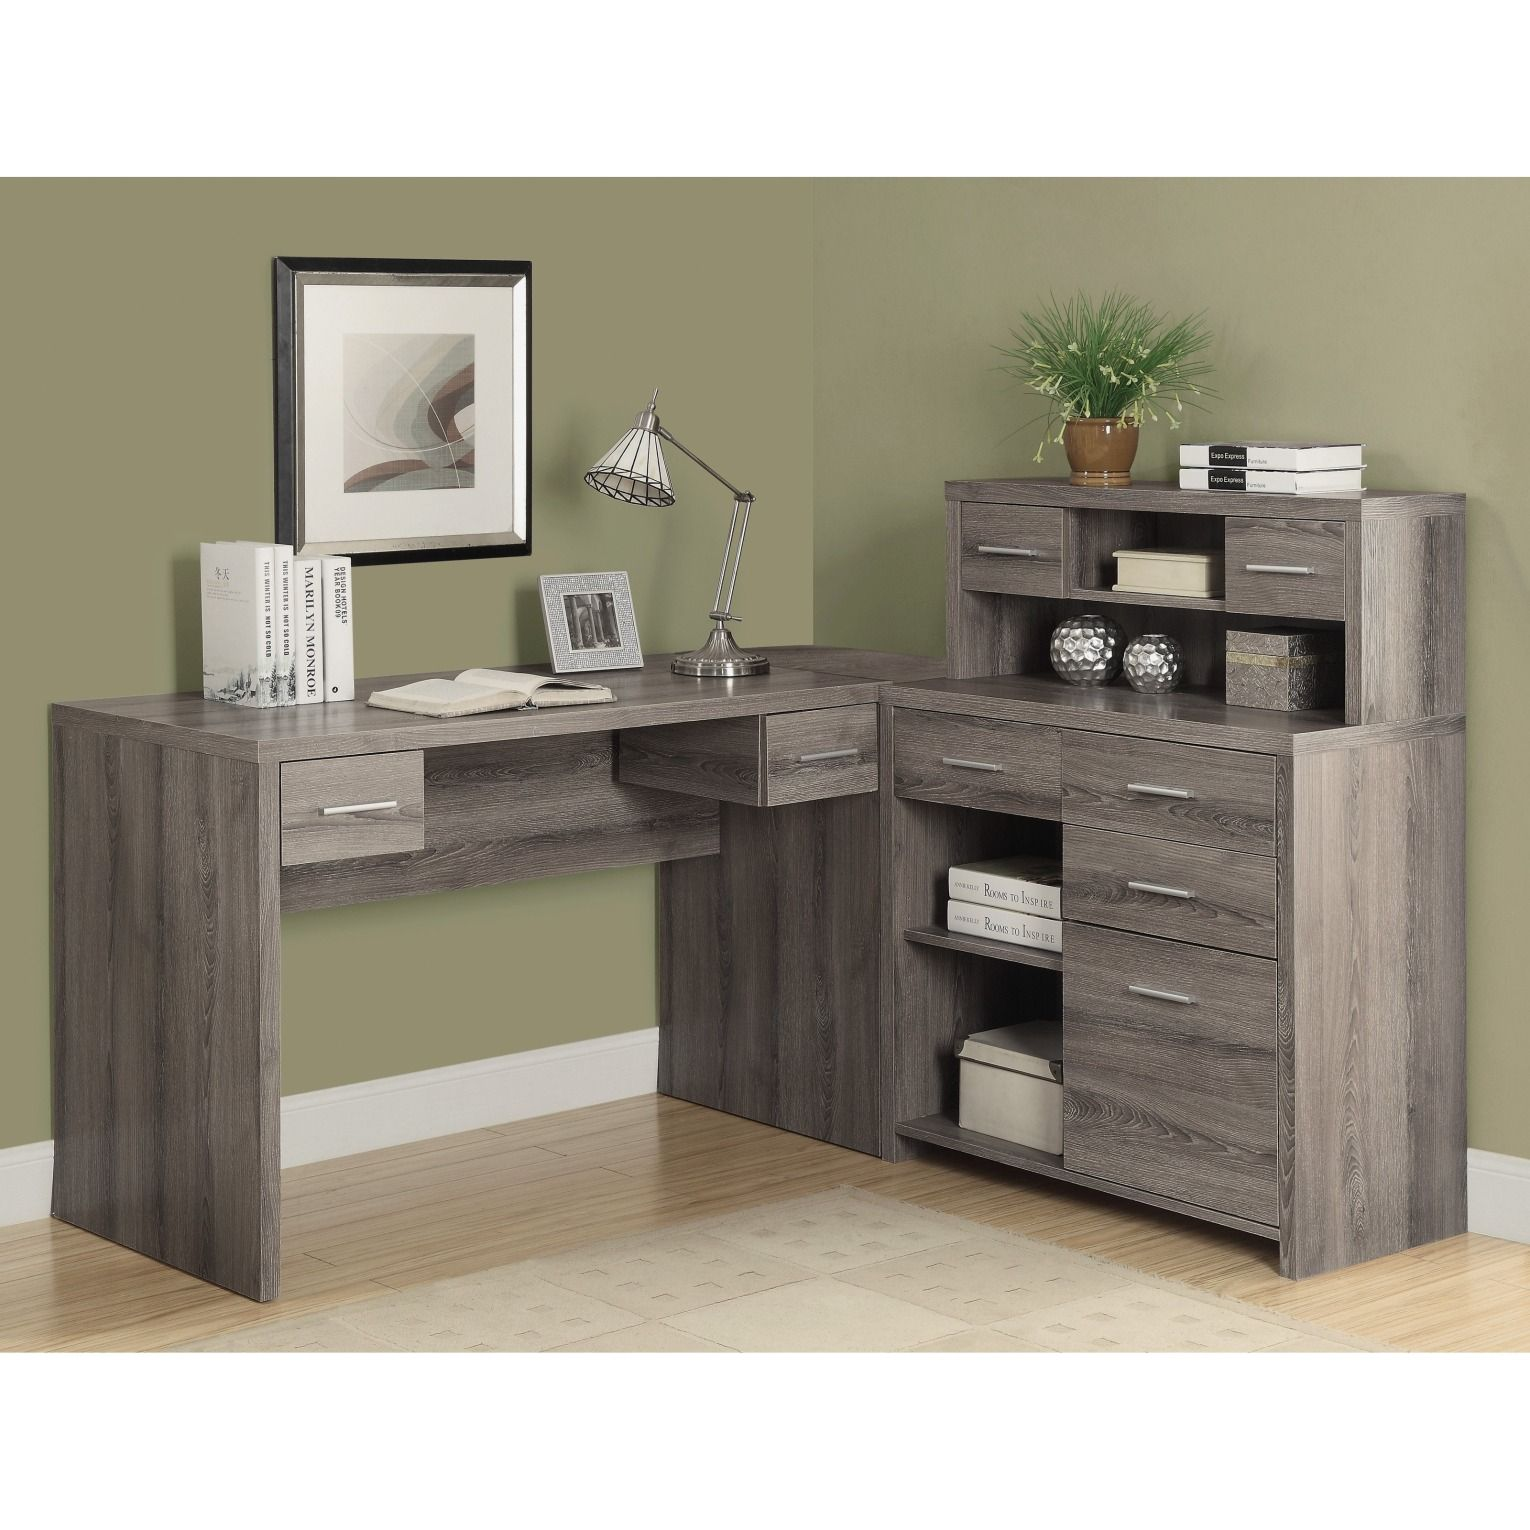 Smart storage and contemporary style, this Lshaped desk